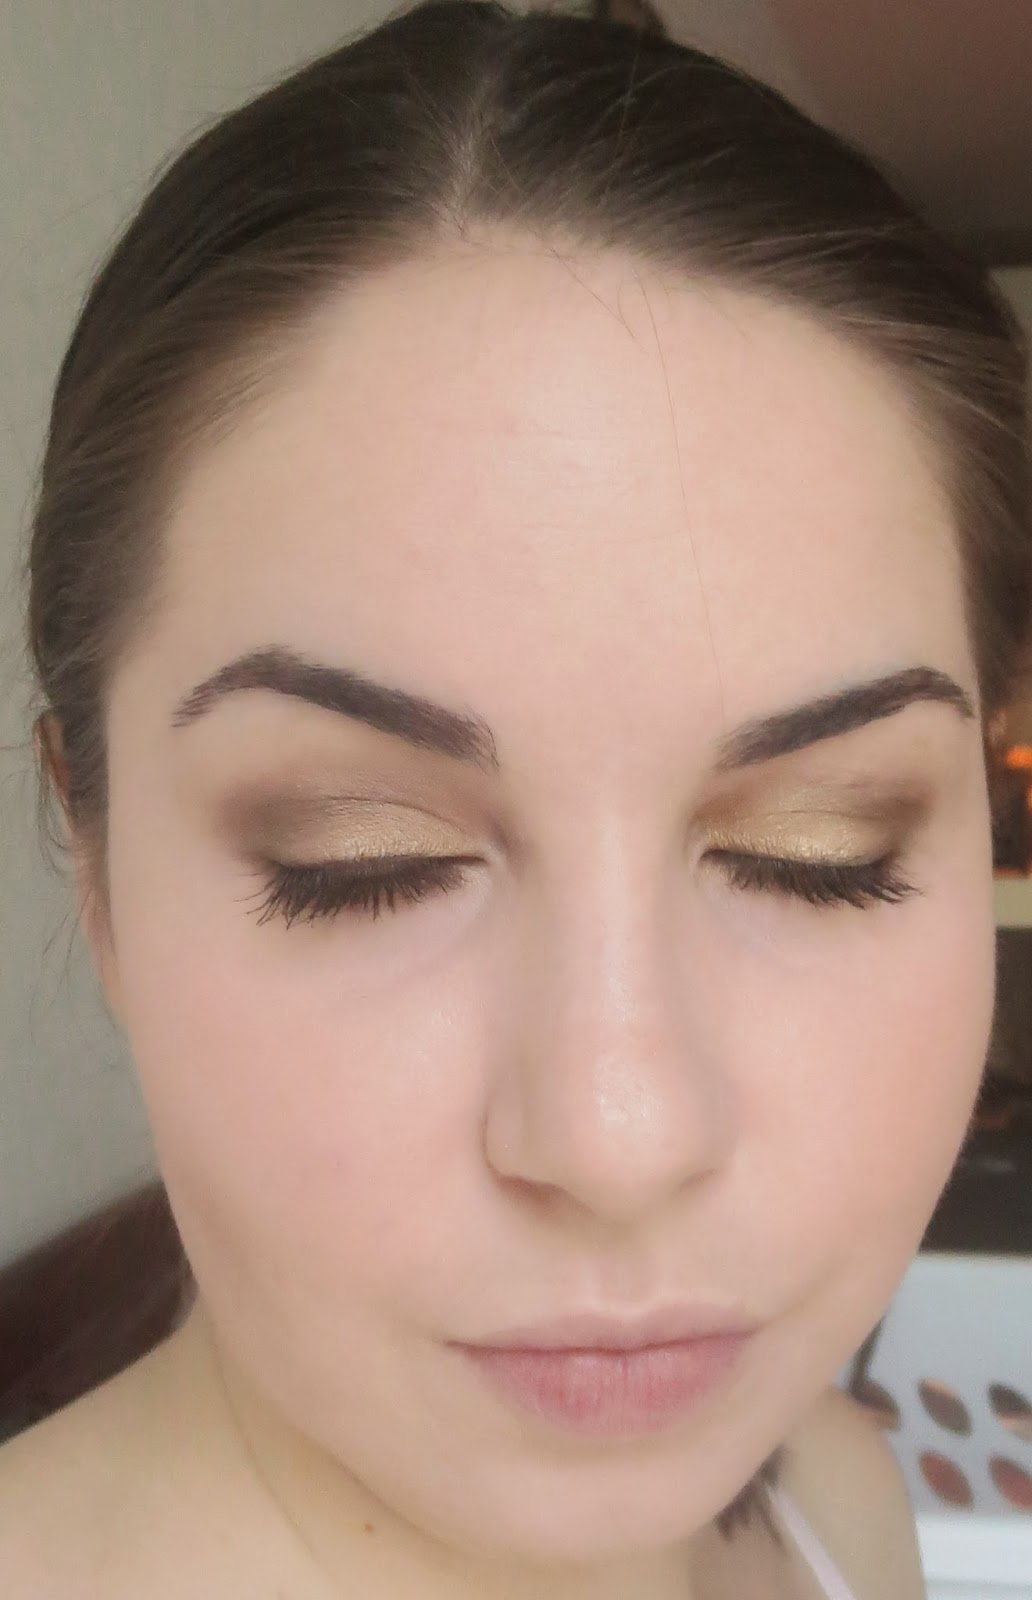 Maybelline The Nudes - Smokey eye